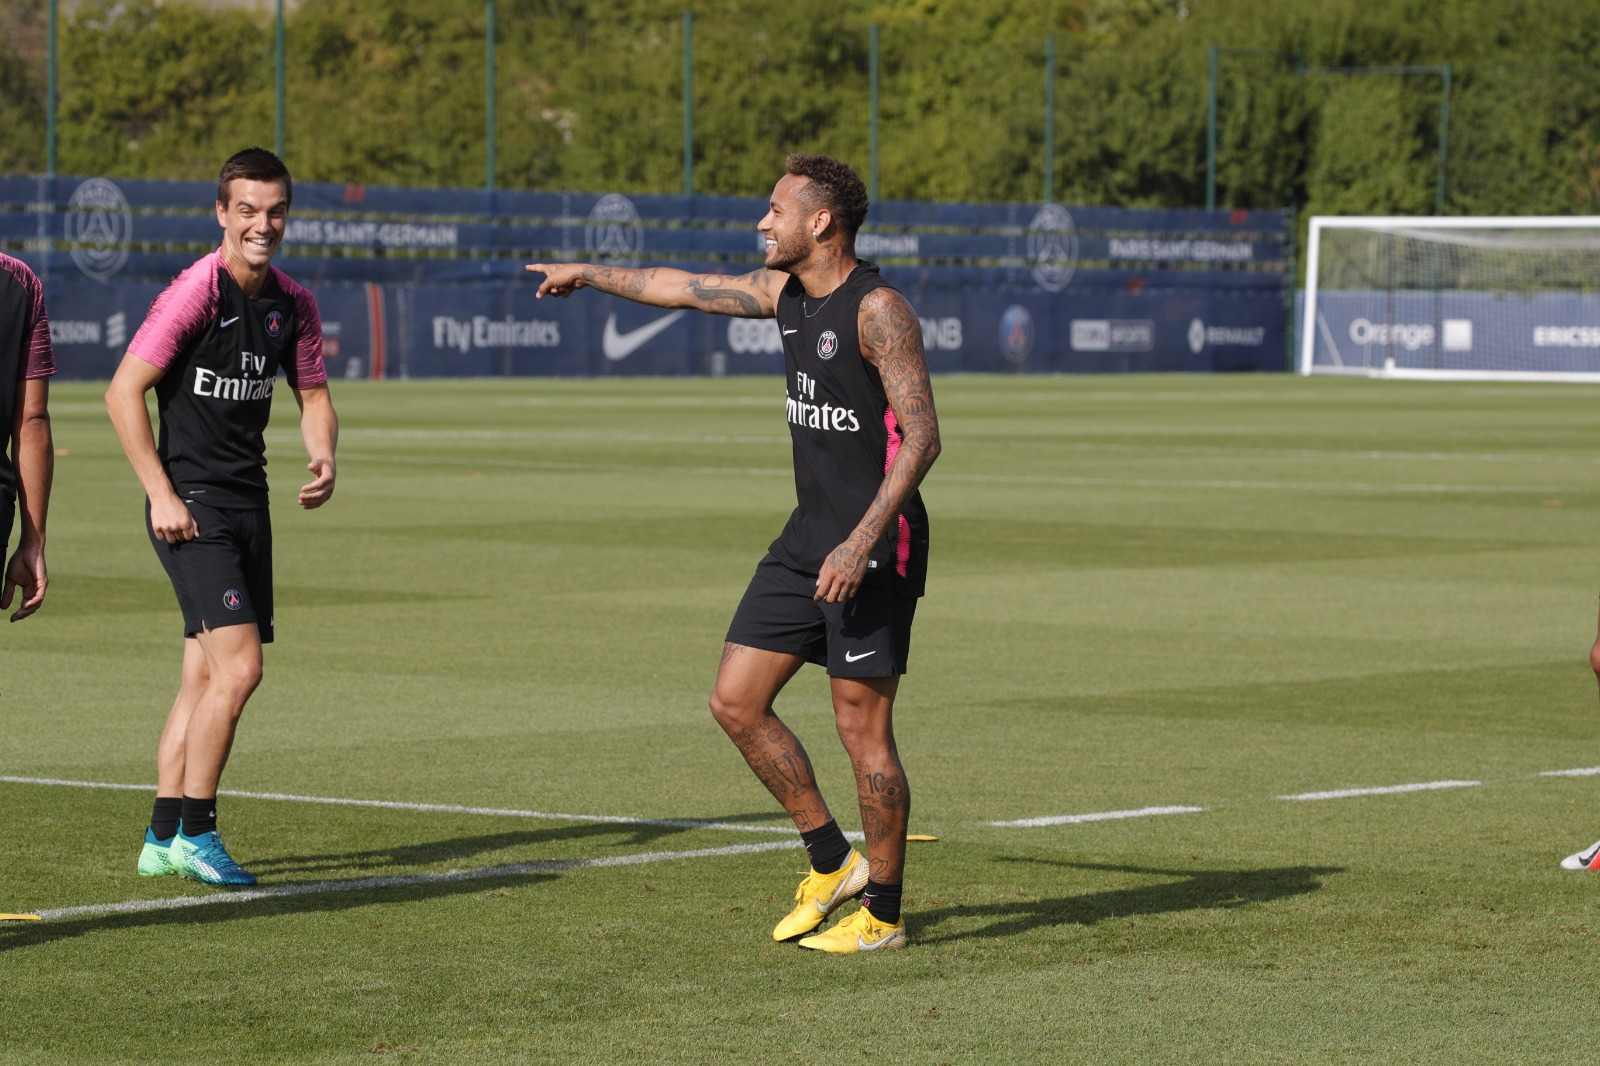 PSG faces Guingamp for second round of Ligue 1 df3ccf5d31256